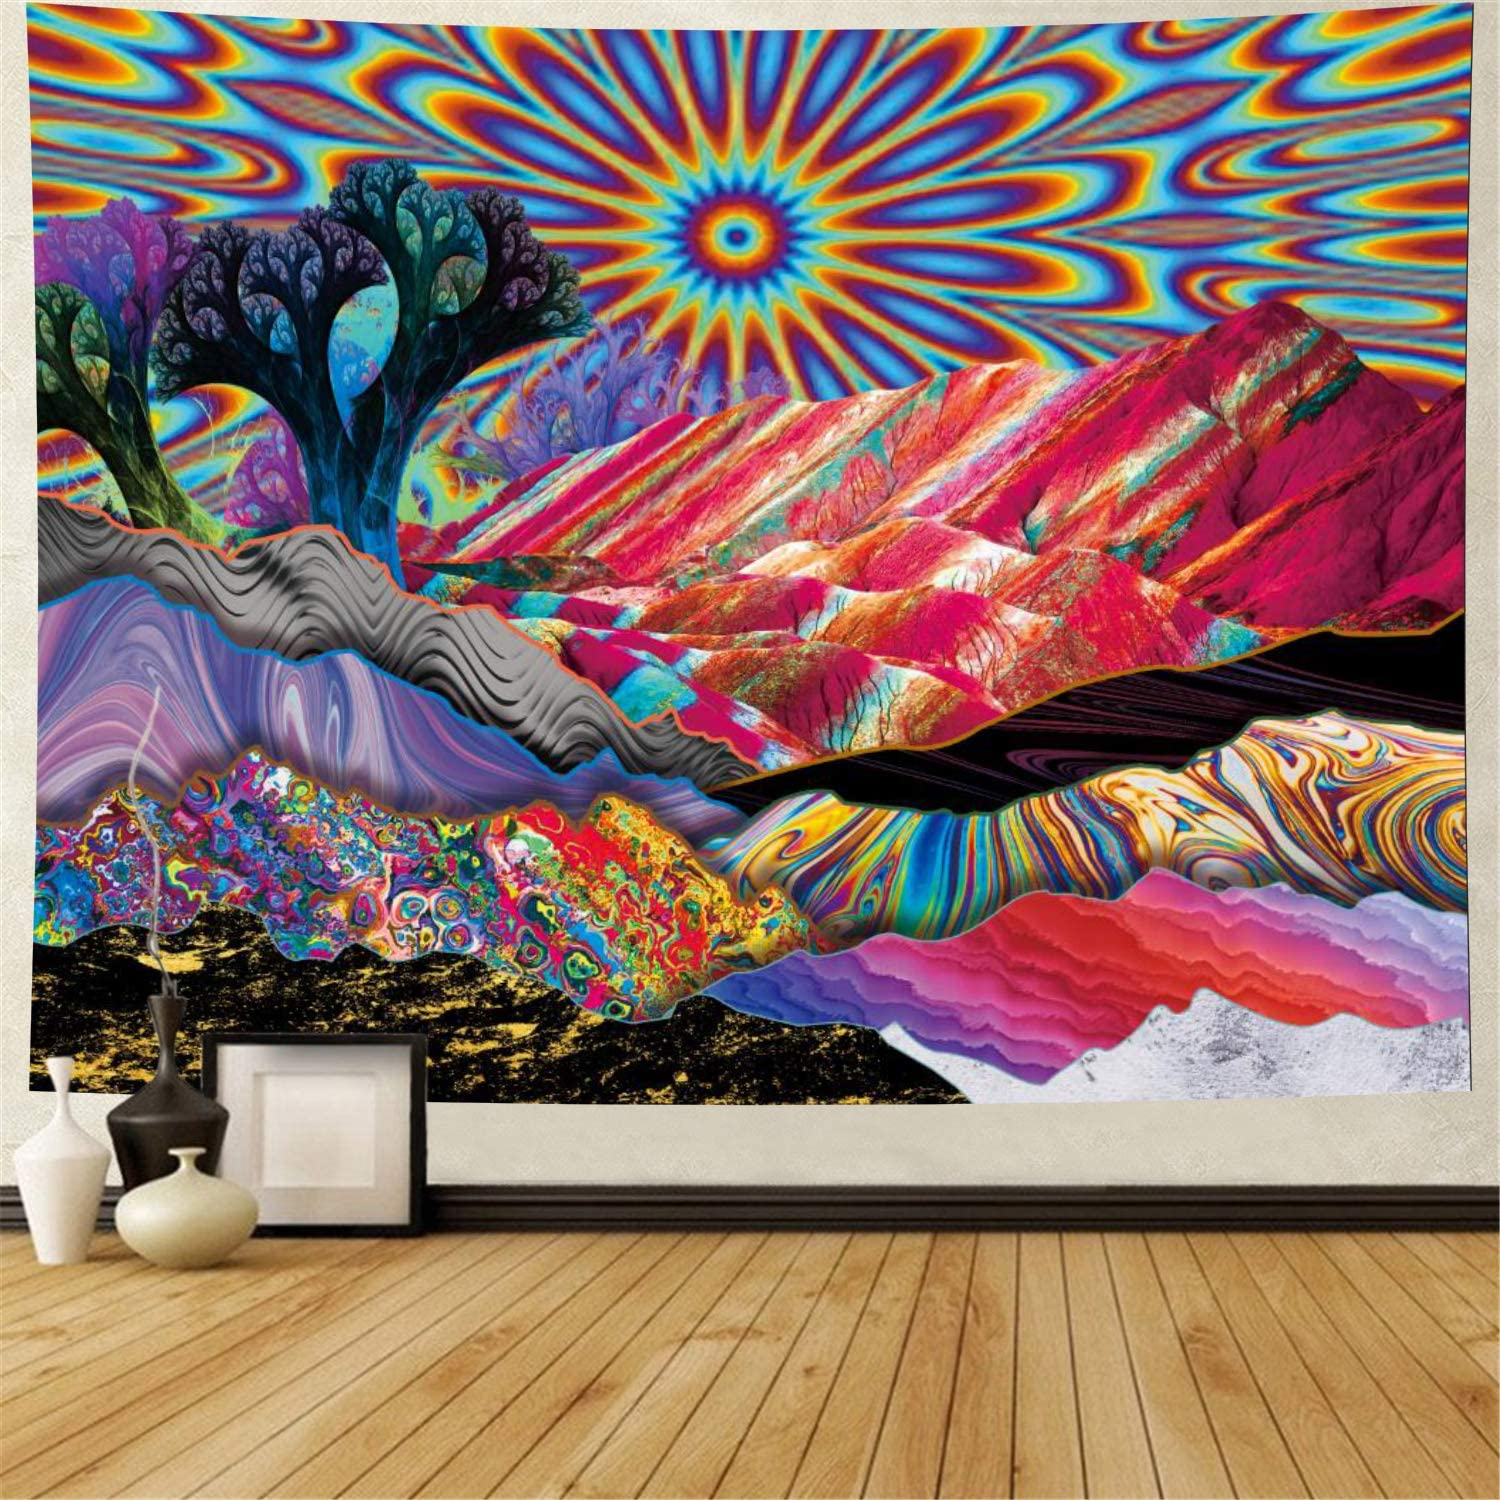 Psychedelic Tapestry Trippy Mountain Sun Tapestry Abstract Trees Tapestry Colorful Nature Landscape Tapestries Bohemian Hippie Tapestry Wall Hanging for Room (XLarge, Red Psychedelic)